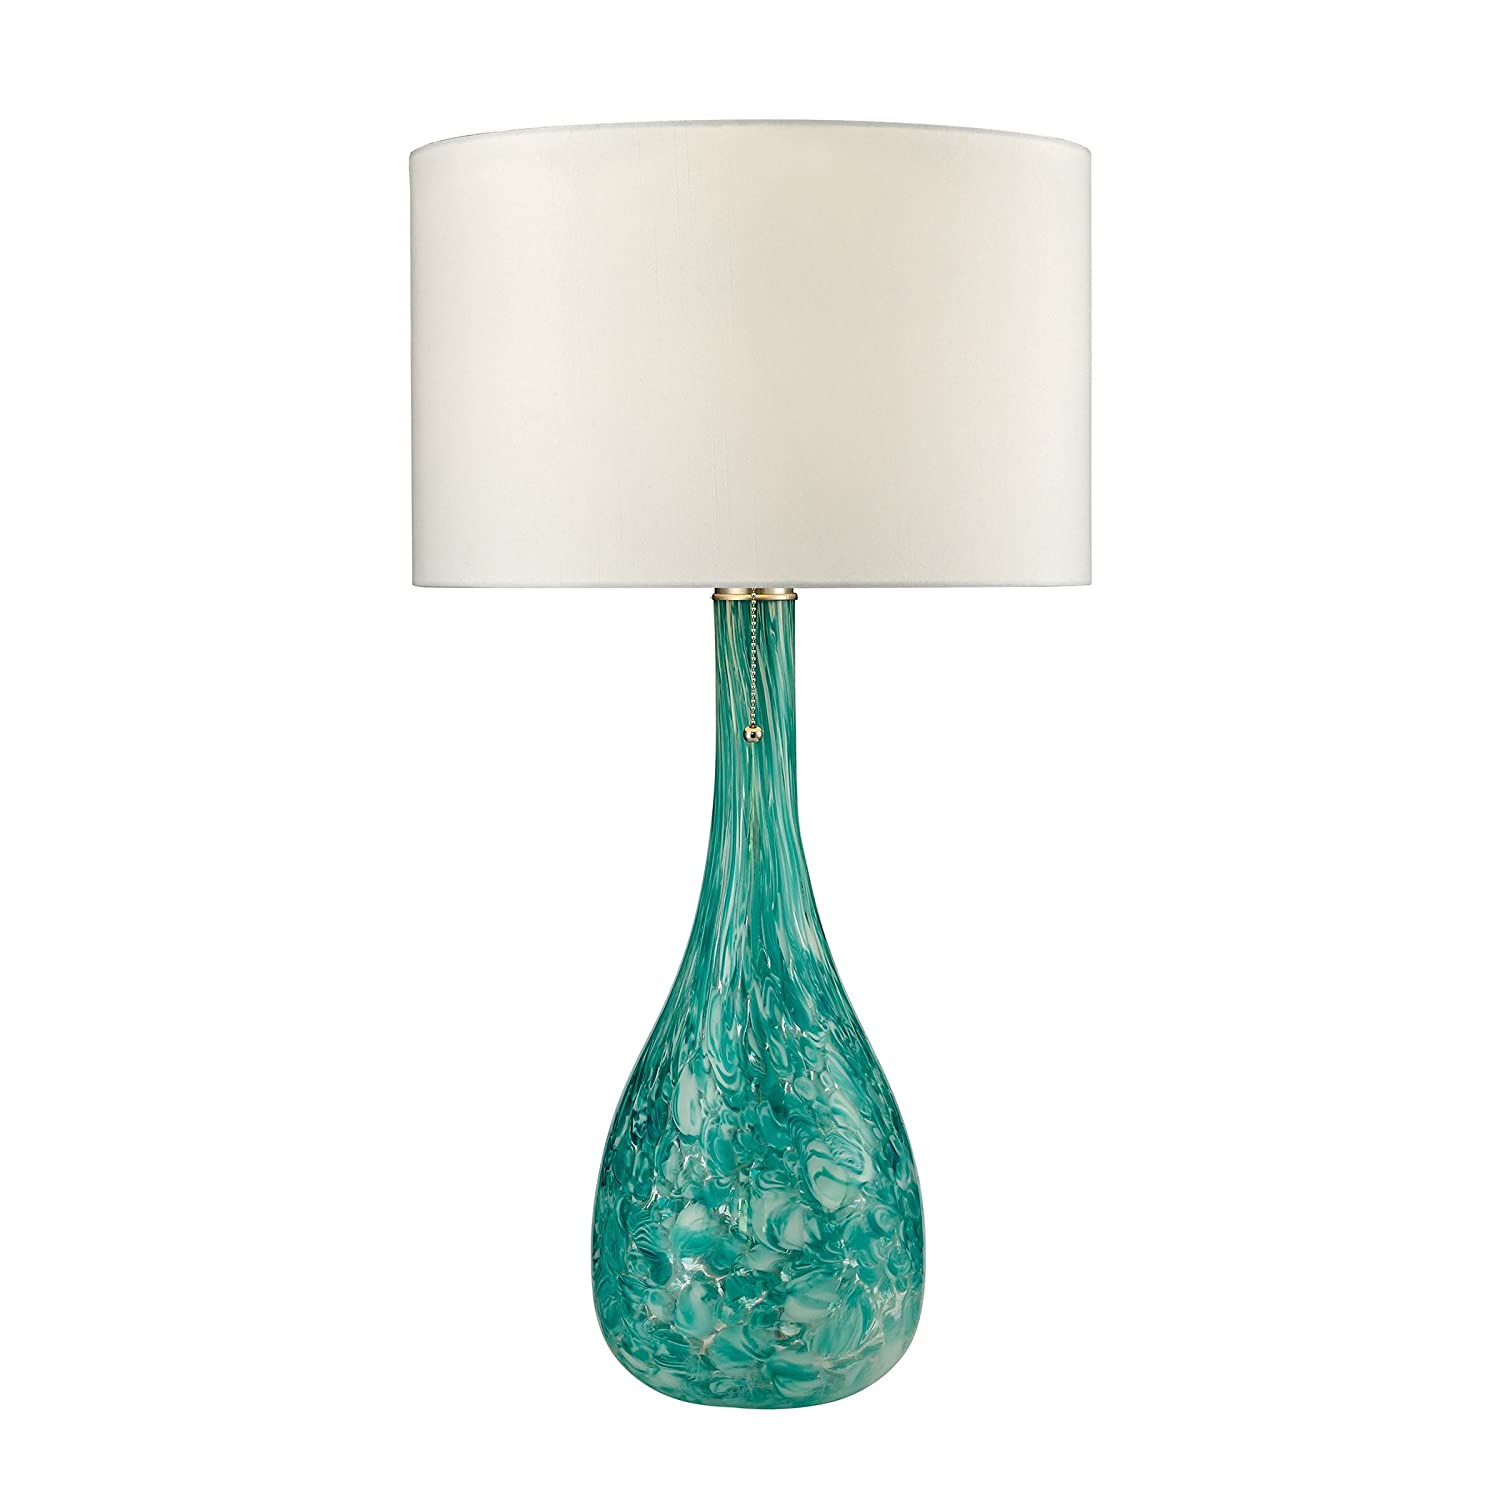 Dimond lighting d2691 blown glass table lamp seafoam green dimond lighting d2691 blown glass table lamp seafoam green amazon aloadofball Gallery